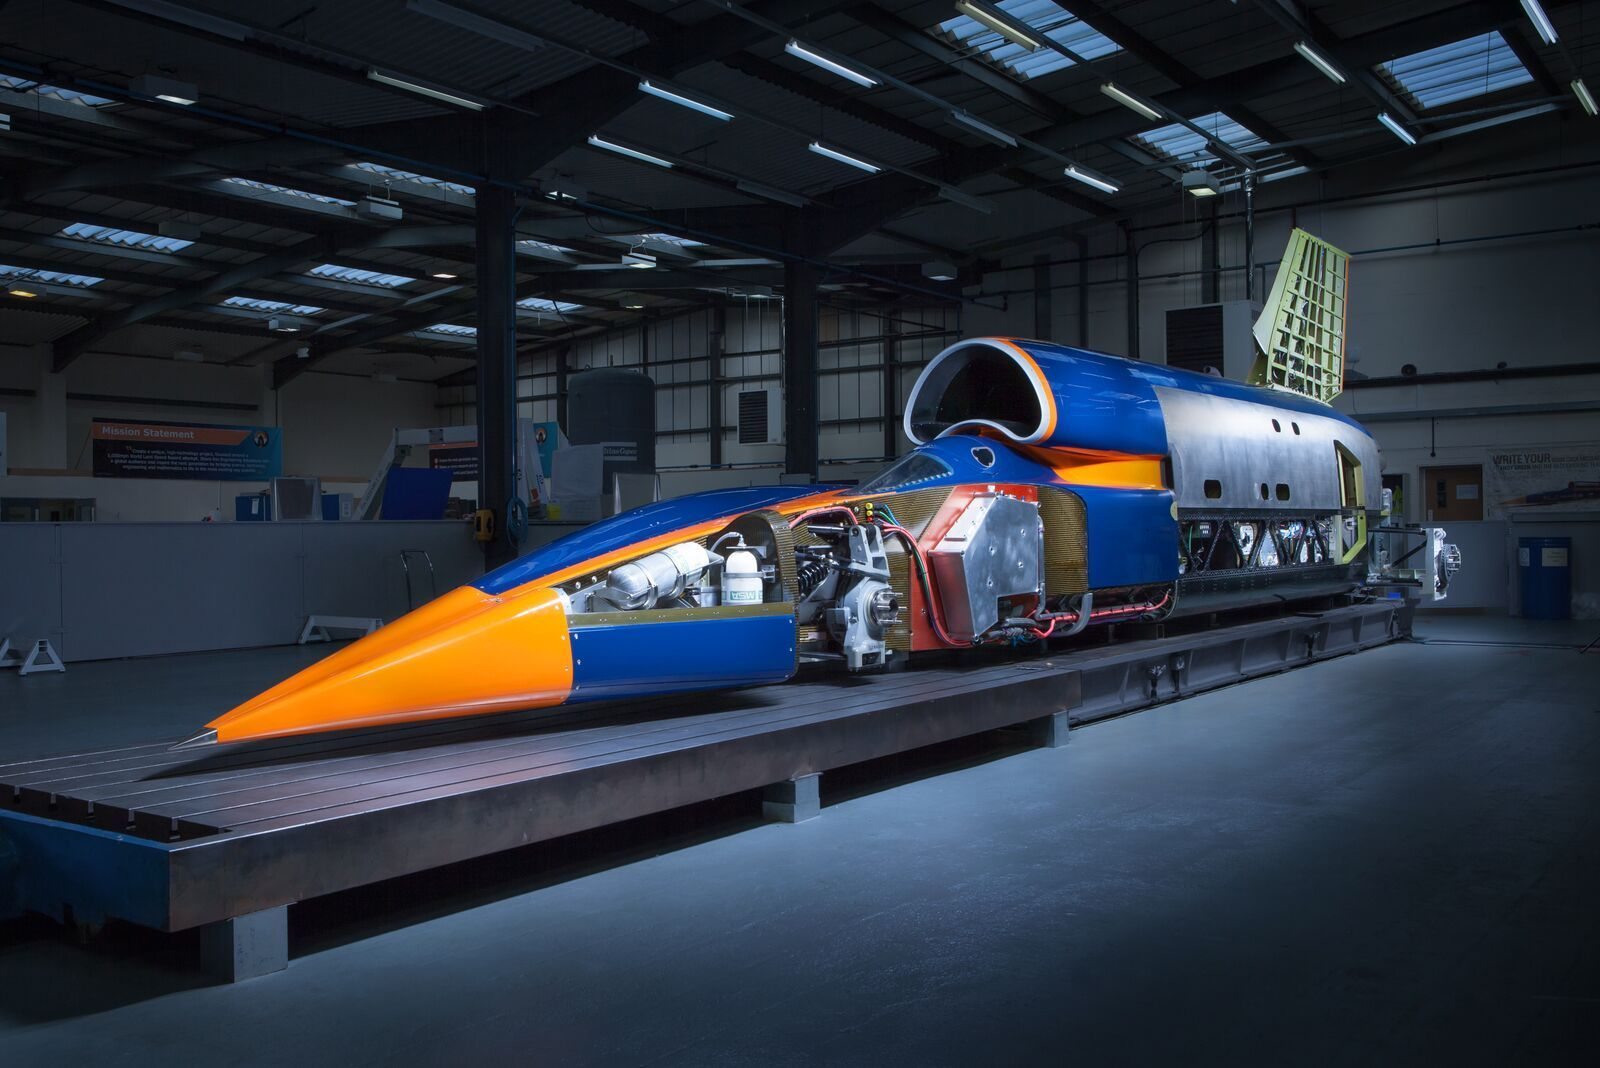 The Bloodhound SSC (supersonic car) is on display at Canary Wharf